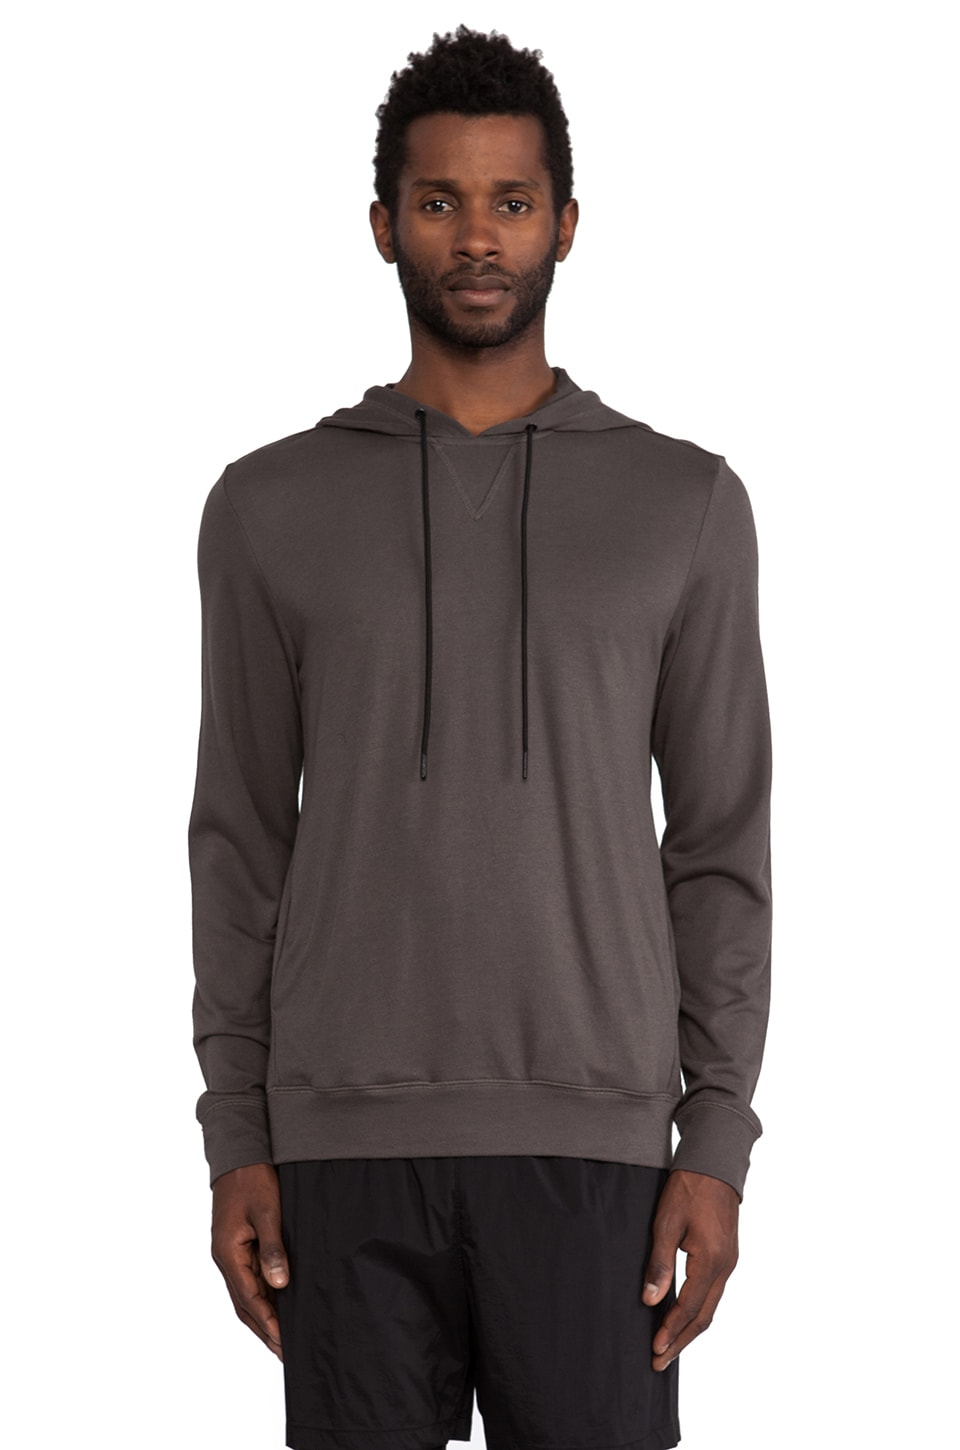 Theory 38 Treck Hoodie in Bottle